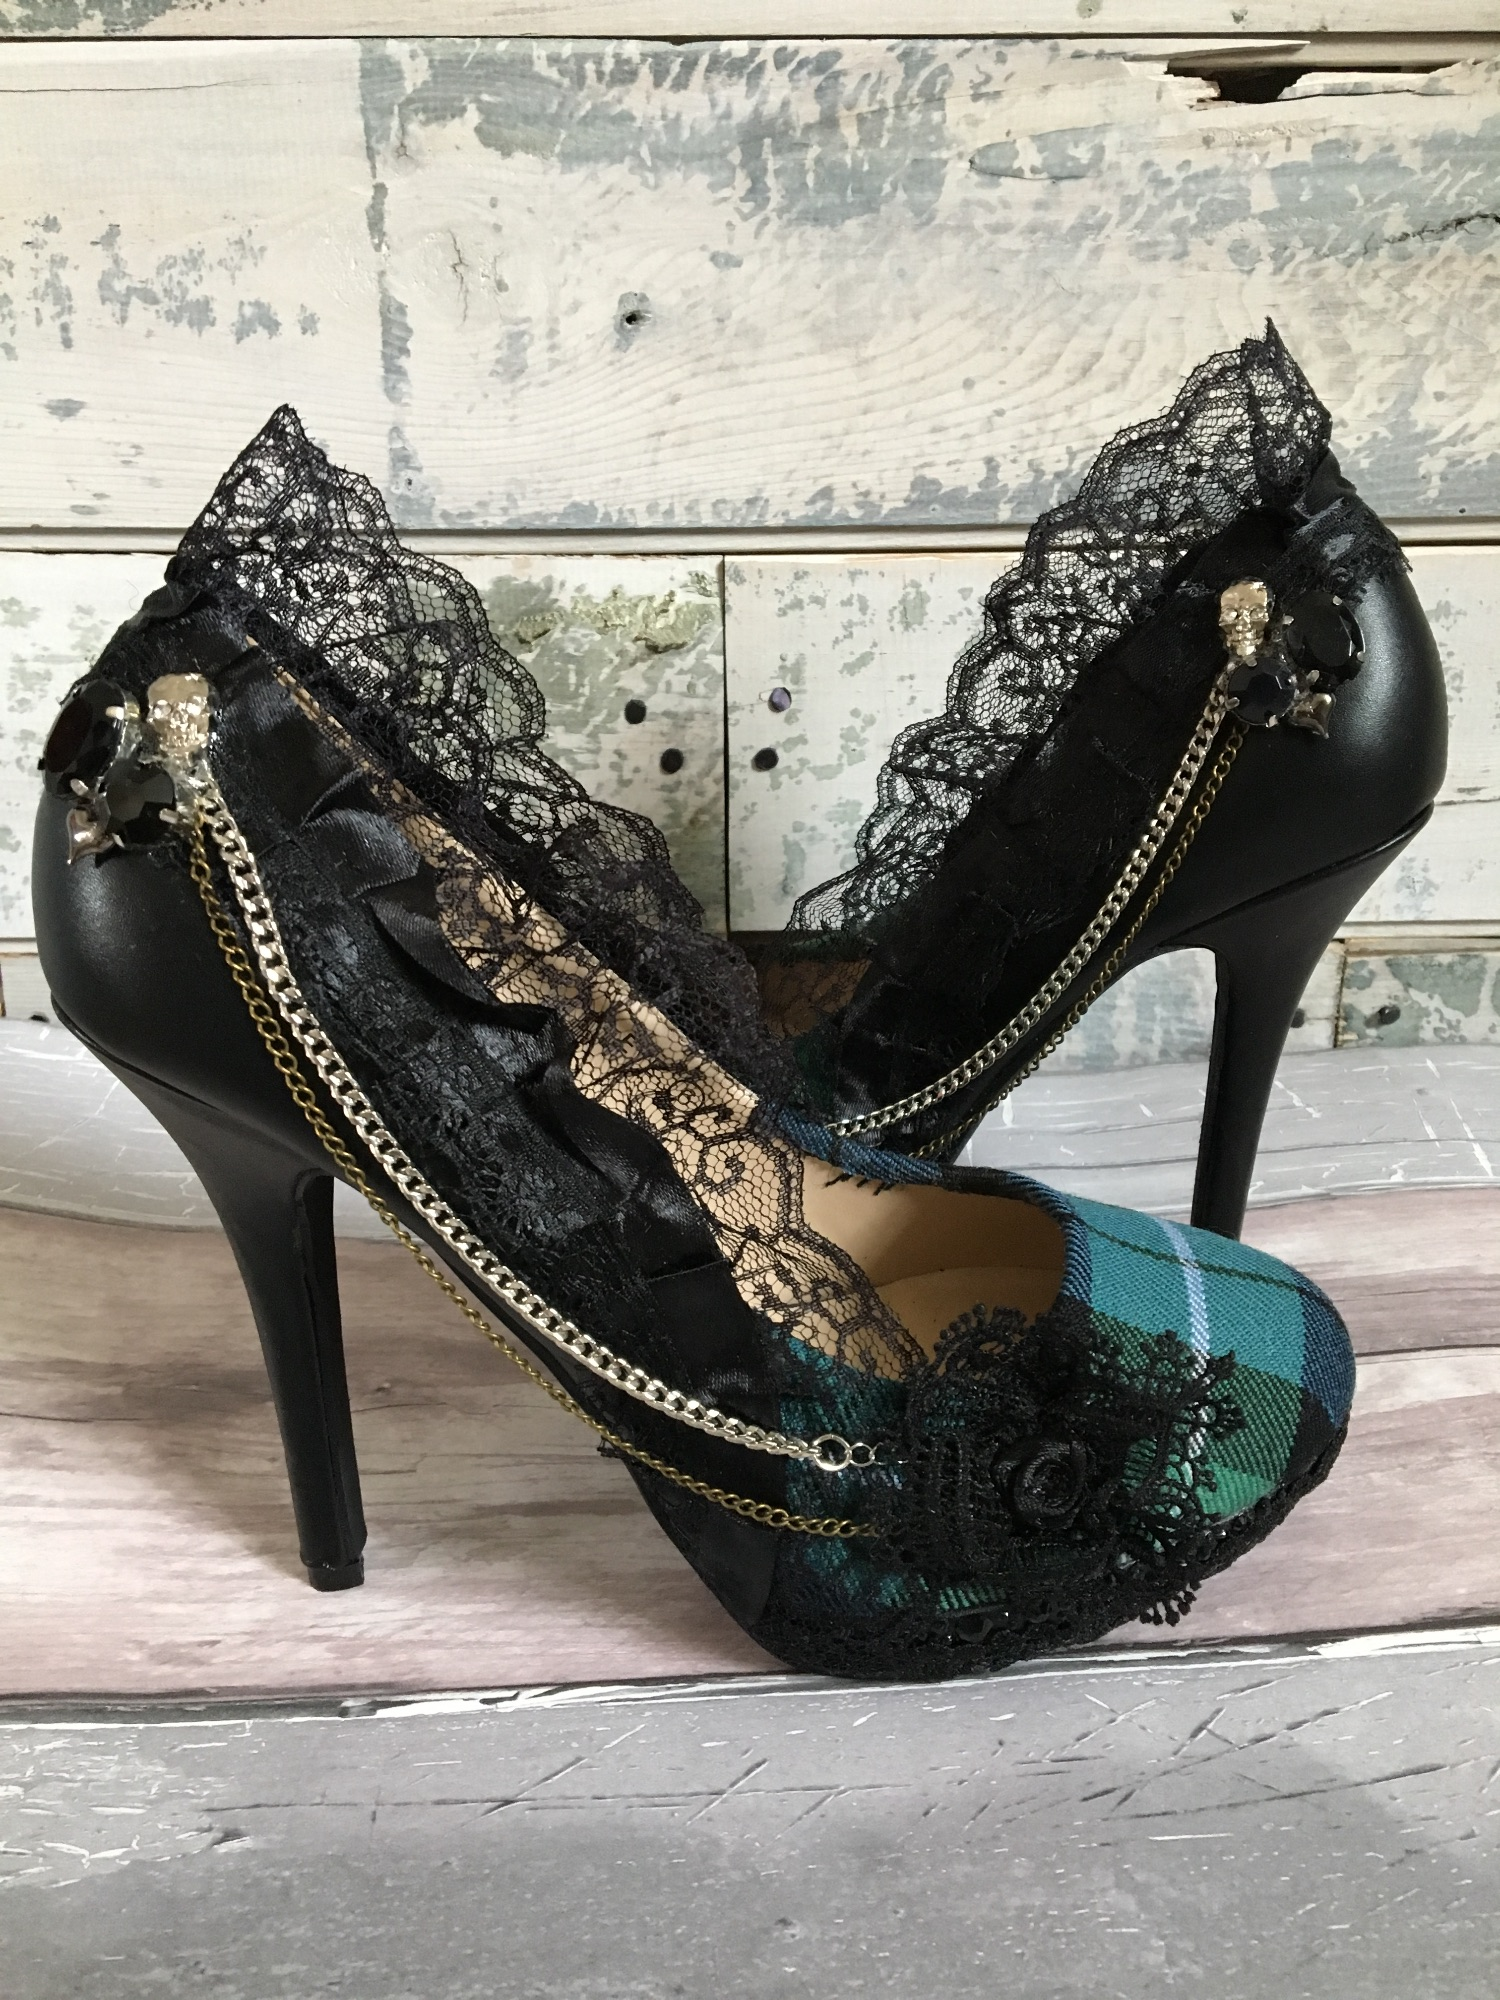 Alternative custom wedding shoes by Lace and Love. Tartan shoes mixed with Lace for a gothic tartan look.